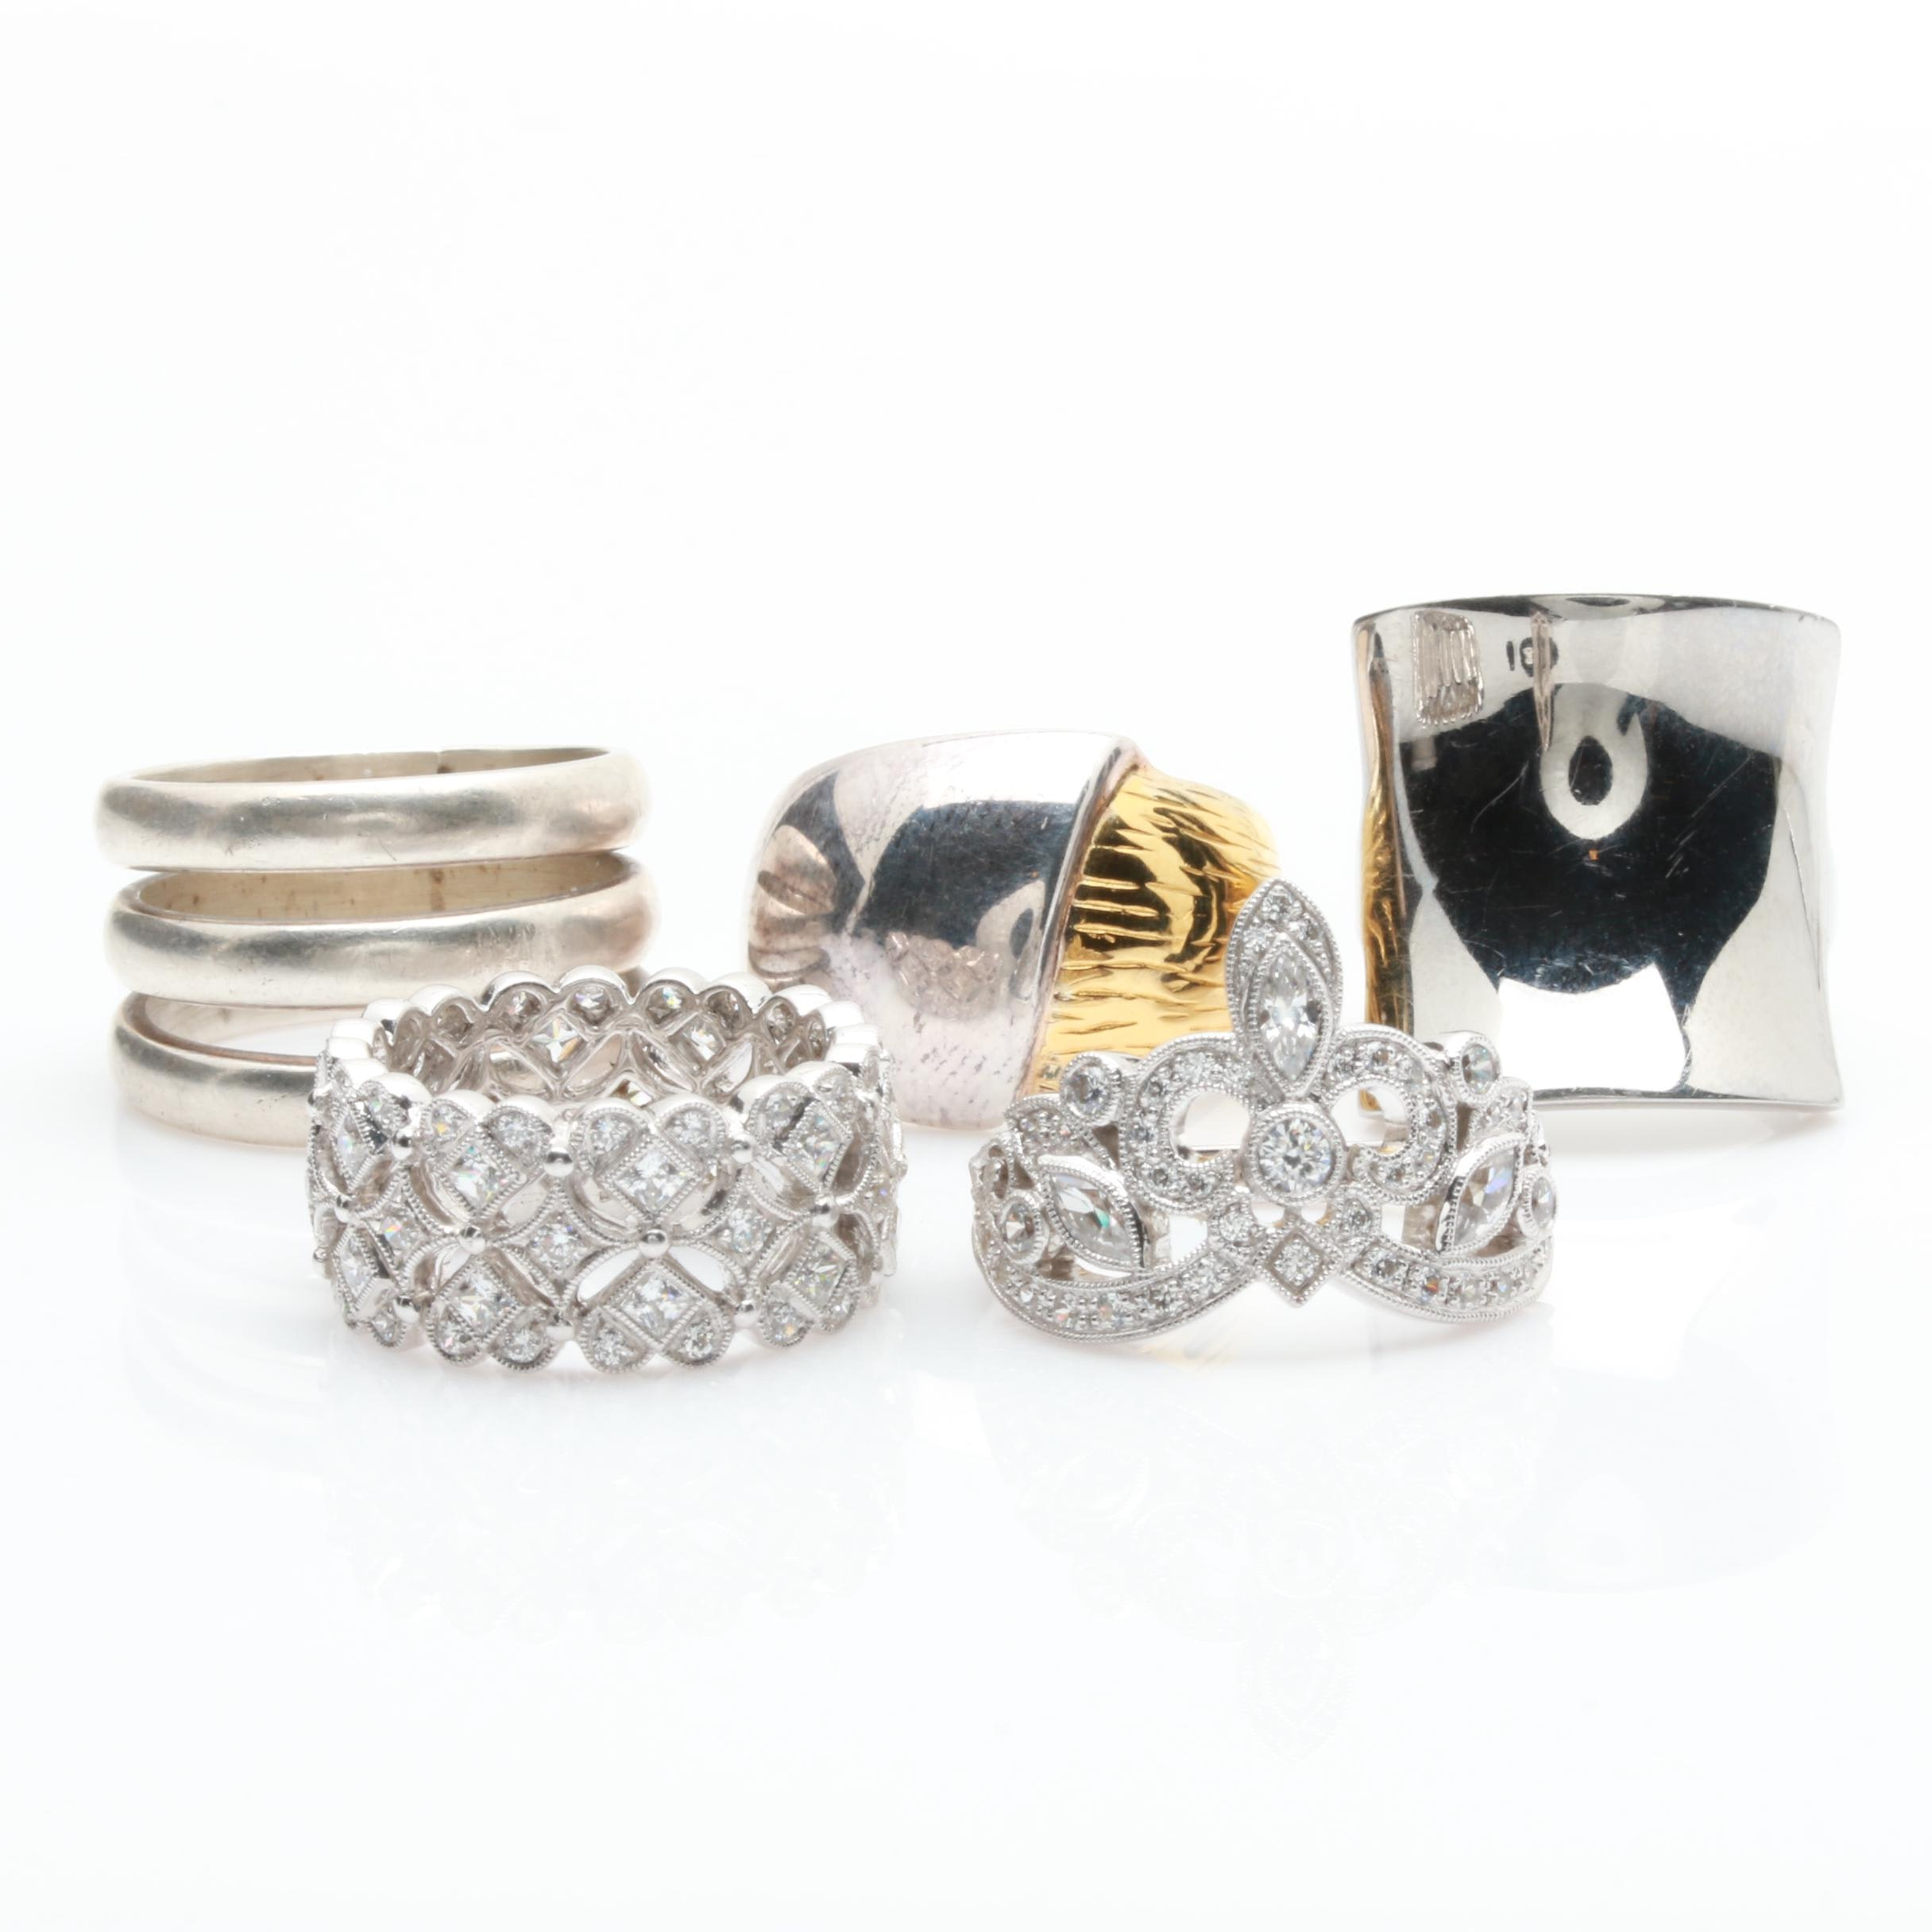 Sterling Silver Cubic Zirconia Rings Including Stainless Steel and Milor